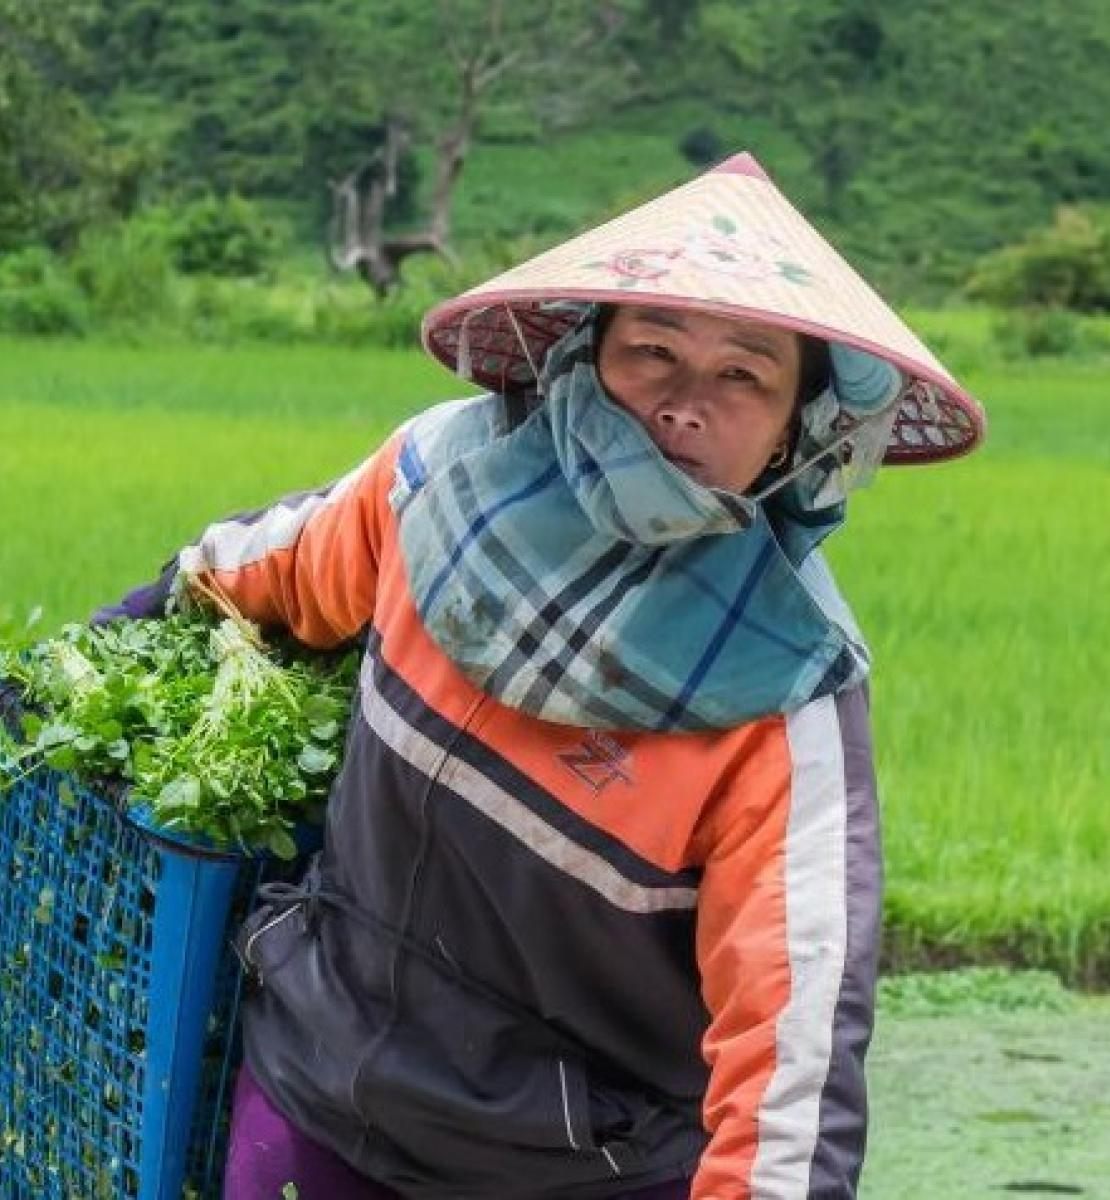 A female worker collecting agricultural produce  in Xieng Khouang Province, Lao PDR.